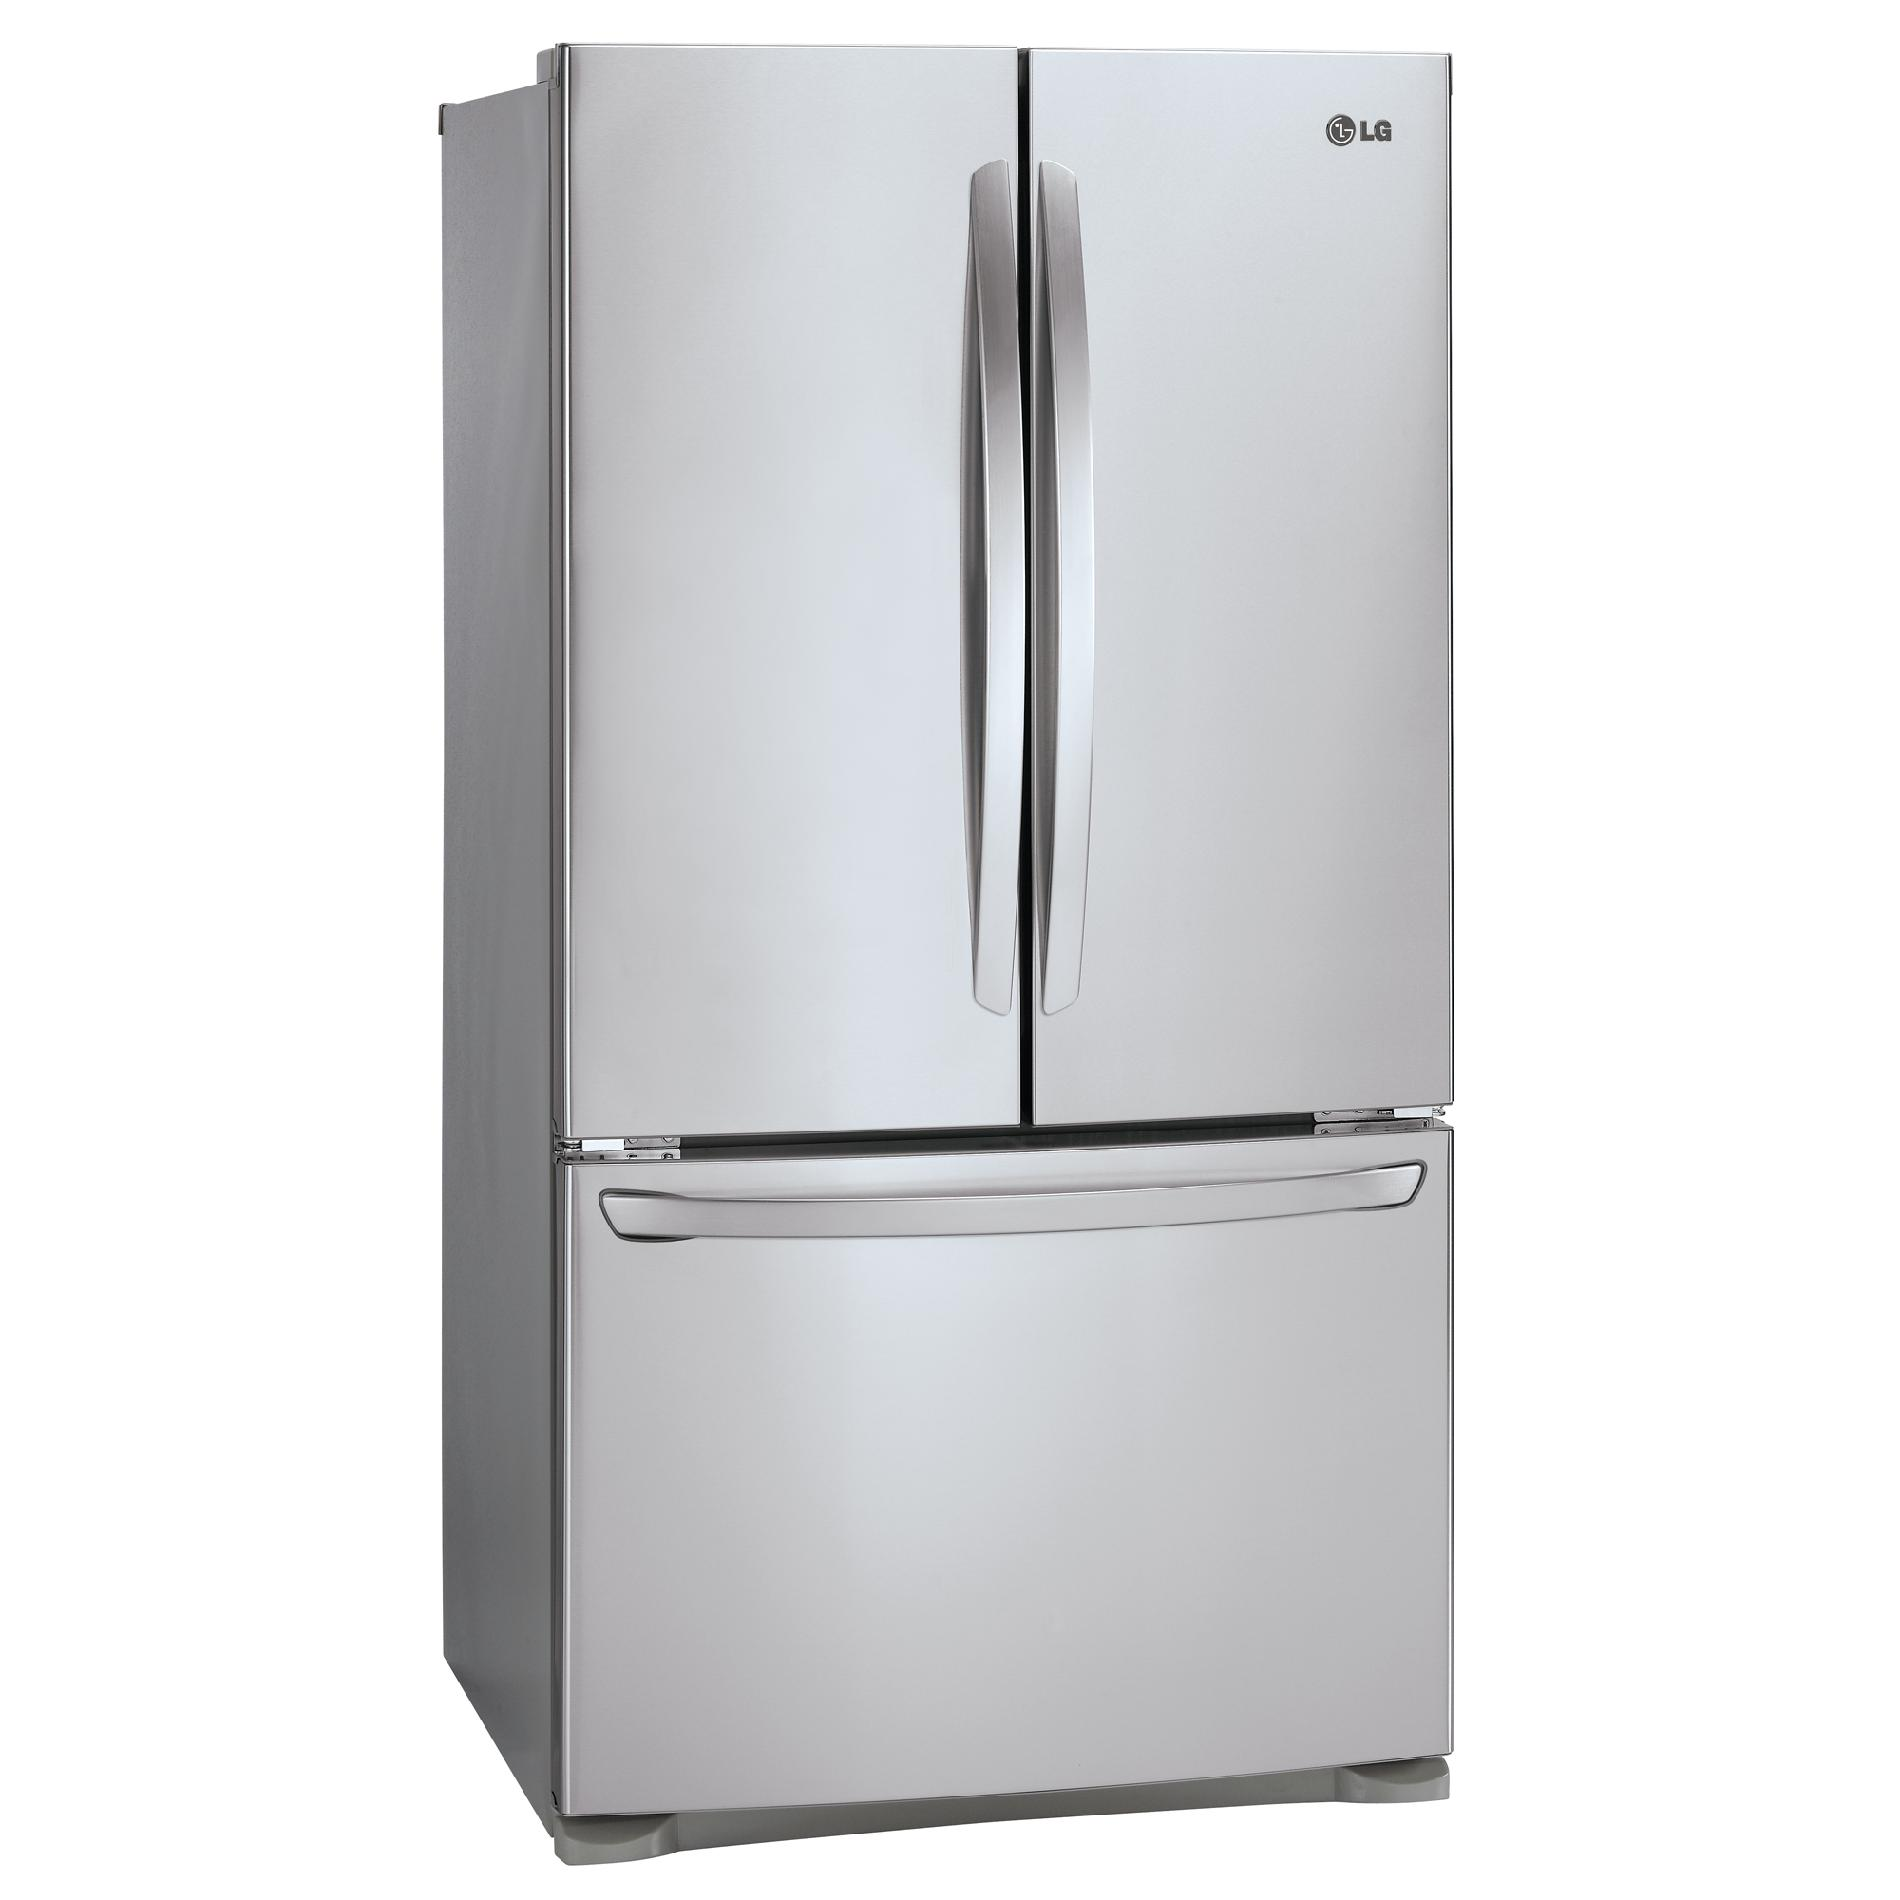 LG LFC28768ST 27.6 cu. ft. Ultra-Capacity French Door Refrigerator w/Smart Cooling